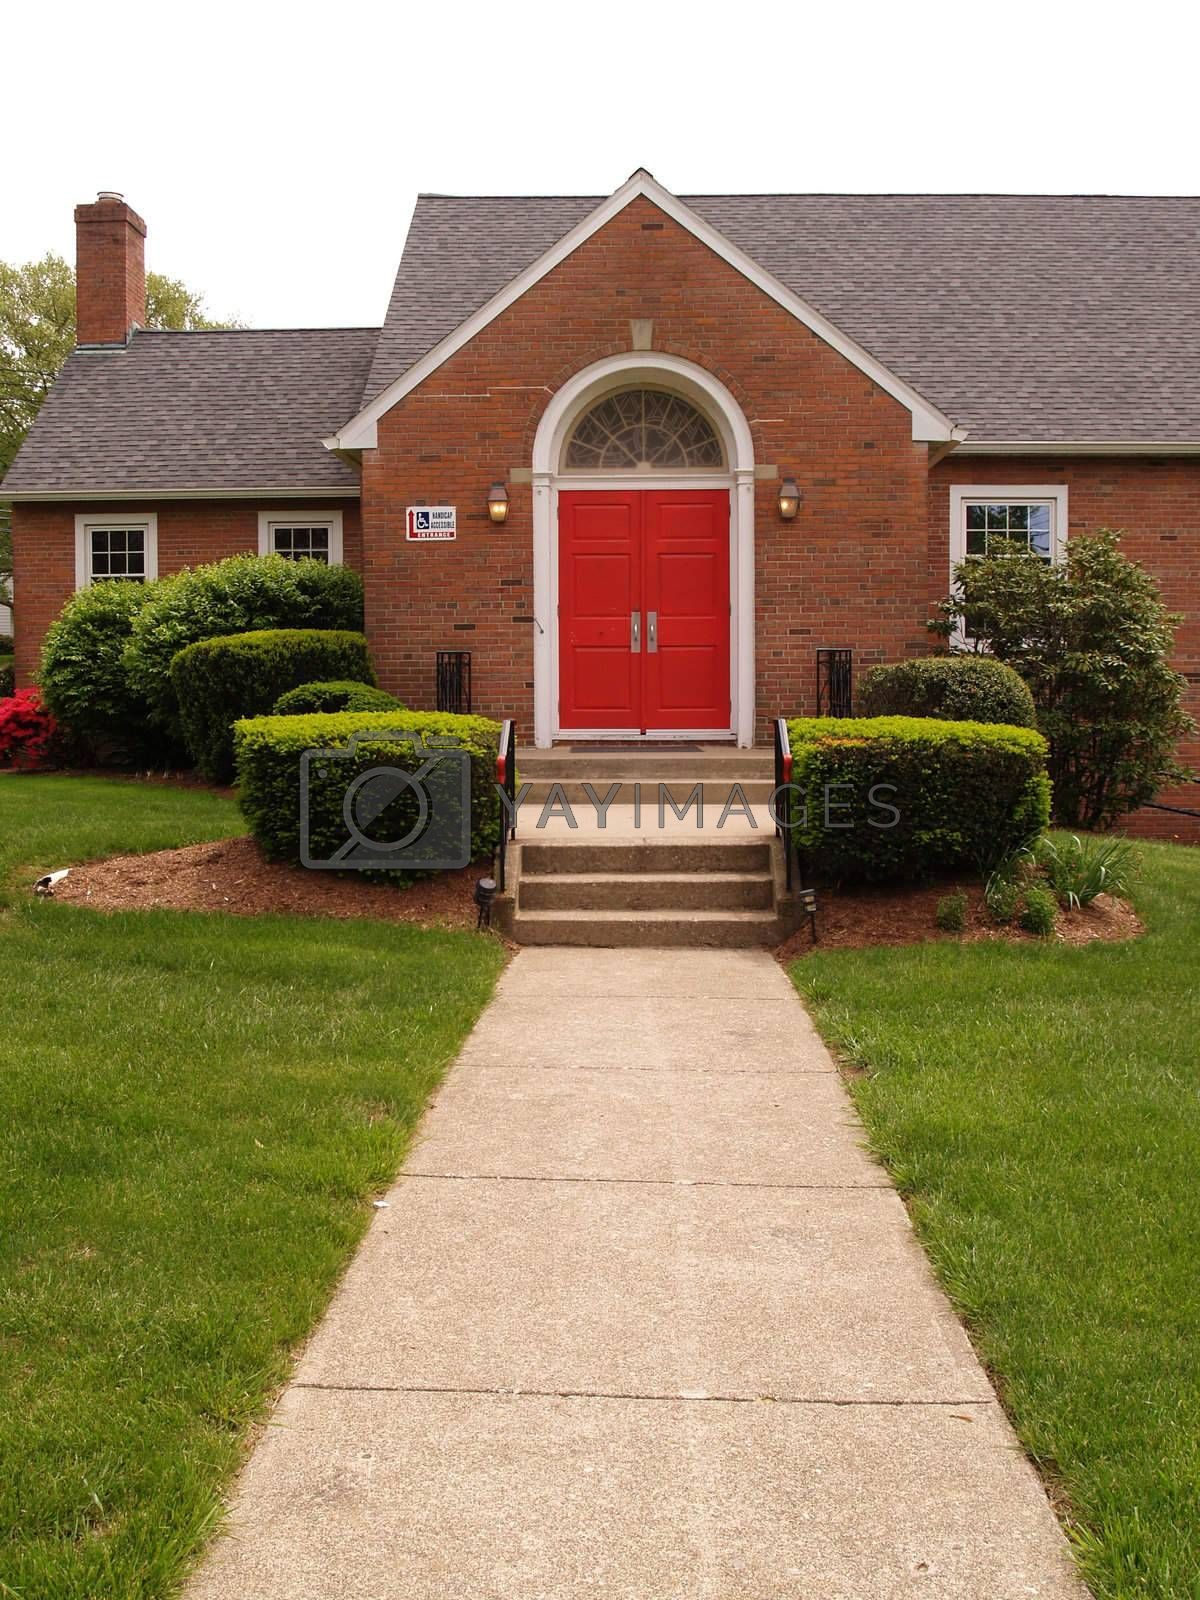 sidewalk leading into a brick rural church with red doors